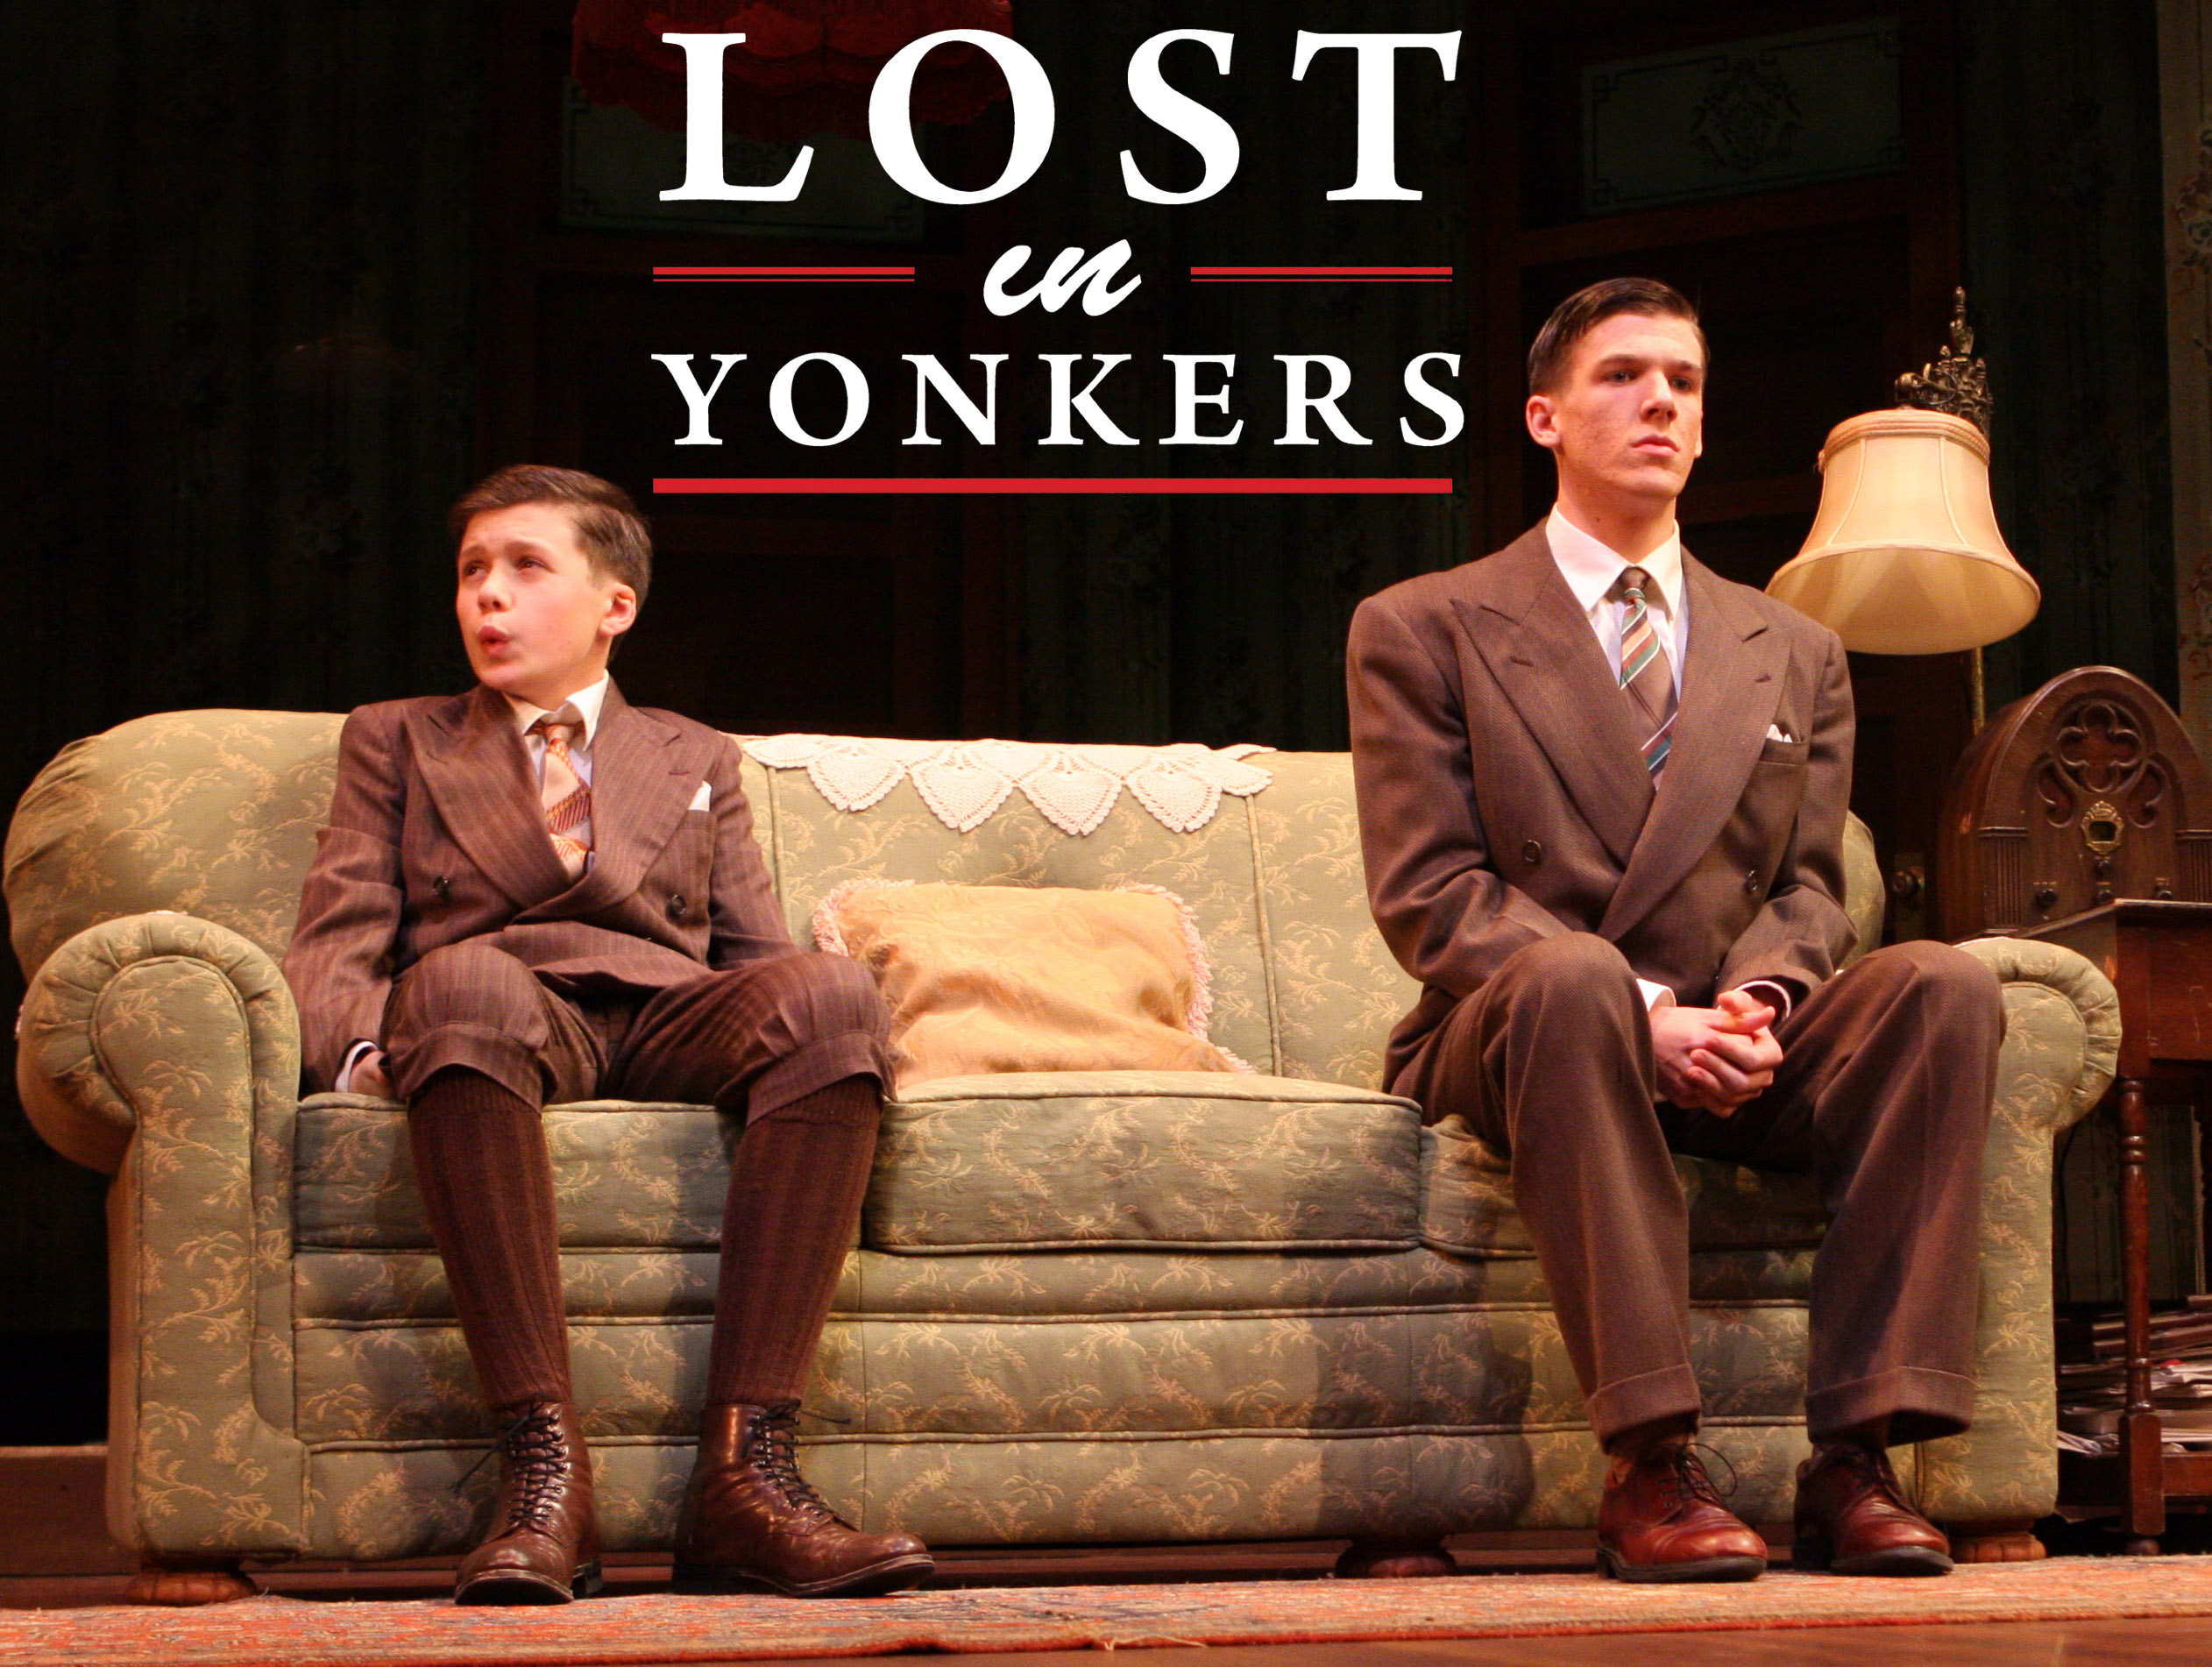 critical essays on lost in yonkers Lost in yonkers was first presented by emanuel azenberg at the center for the performing arts in winston-salem, north carolina, on december 31, 1990.